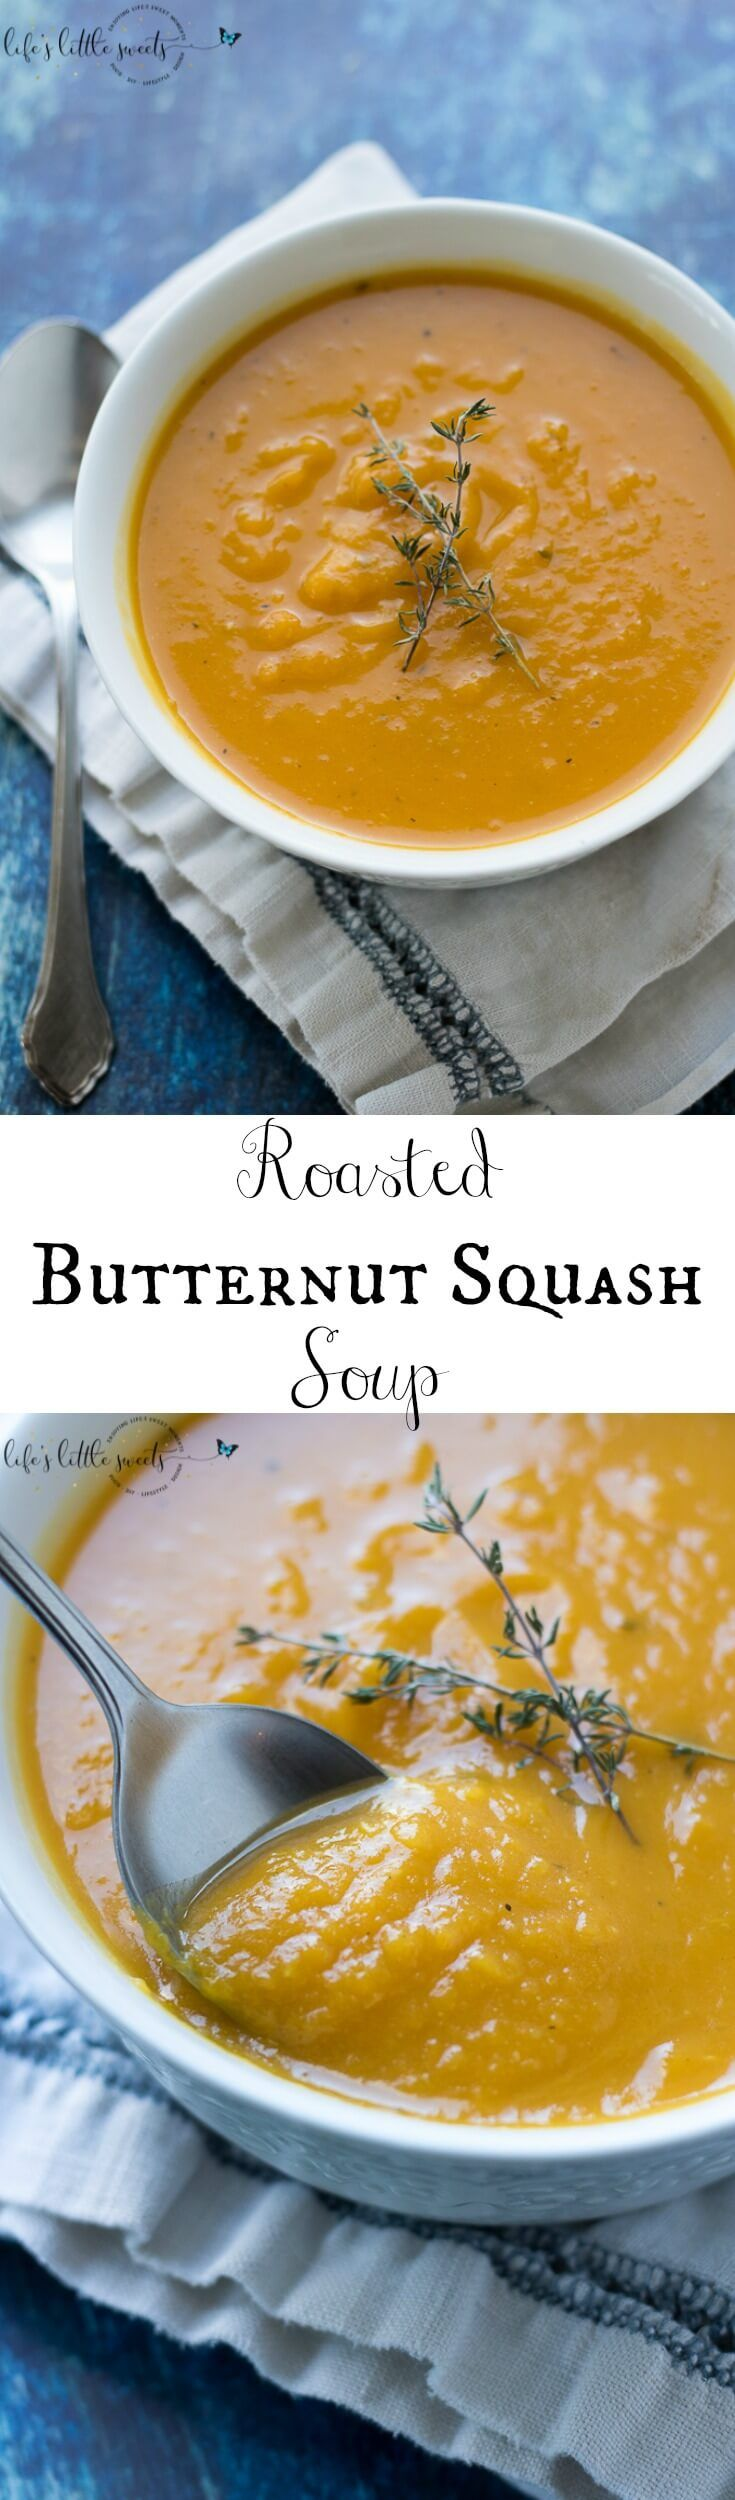 This Roasted Butternut Squash Soup is creamy, (without the cream!) savory and a delicious soup! The perfect way to enjoy butternut squash! (gluten-free, dairy-free, vegan) #butternutsquash #soup #roasted #vegan #glutenfree #dairyfree #vegan